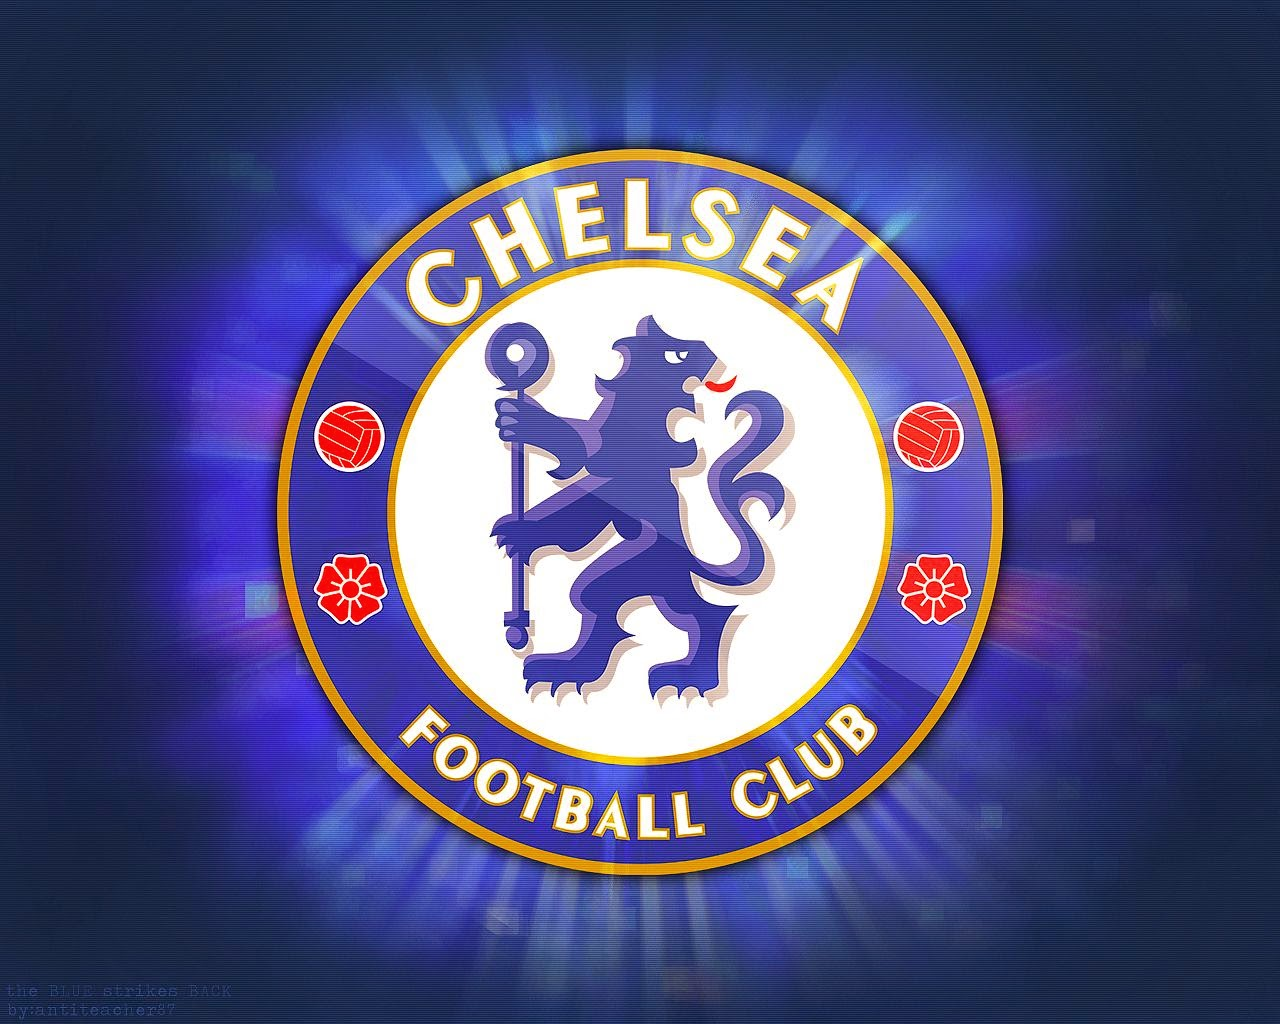 Chelsea Football Club Wallpaper - Football Wallpaper HD